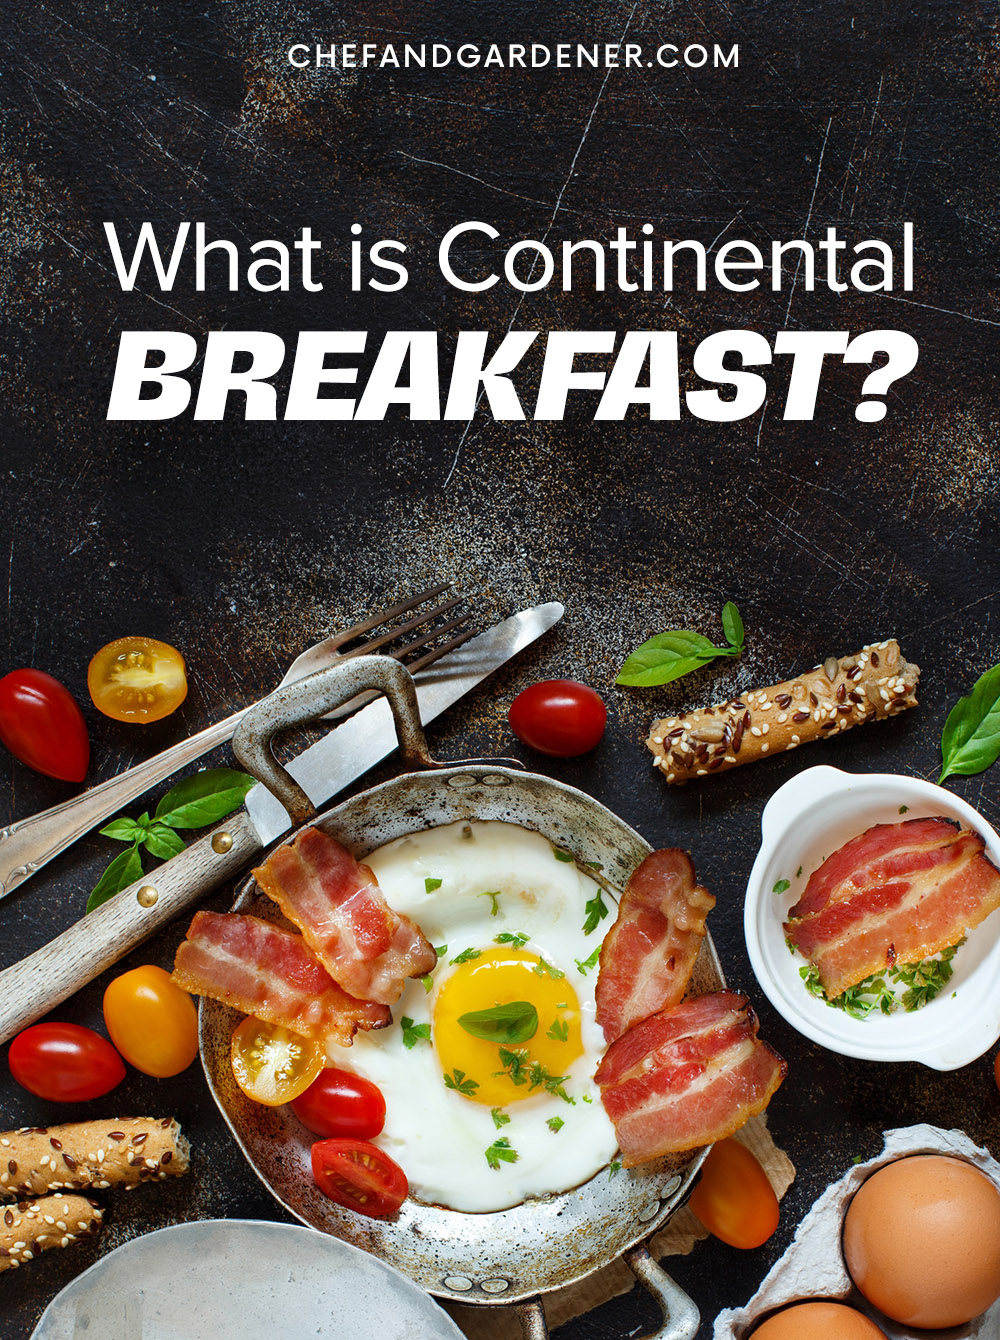 Continental breakfasts explained